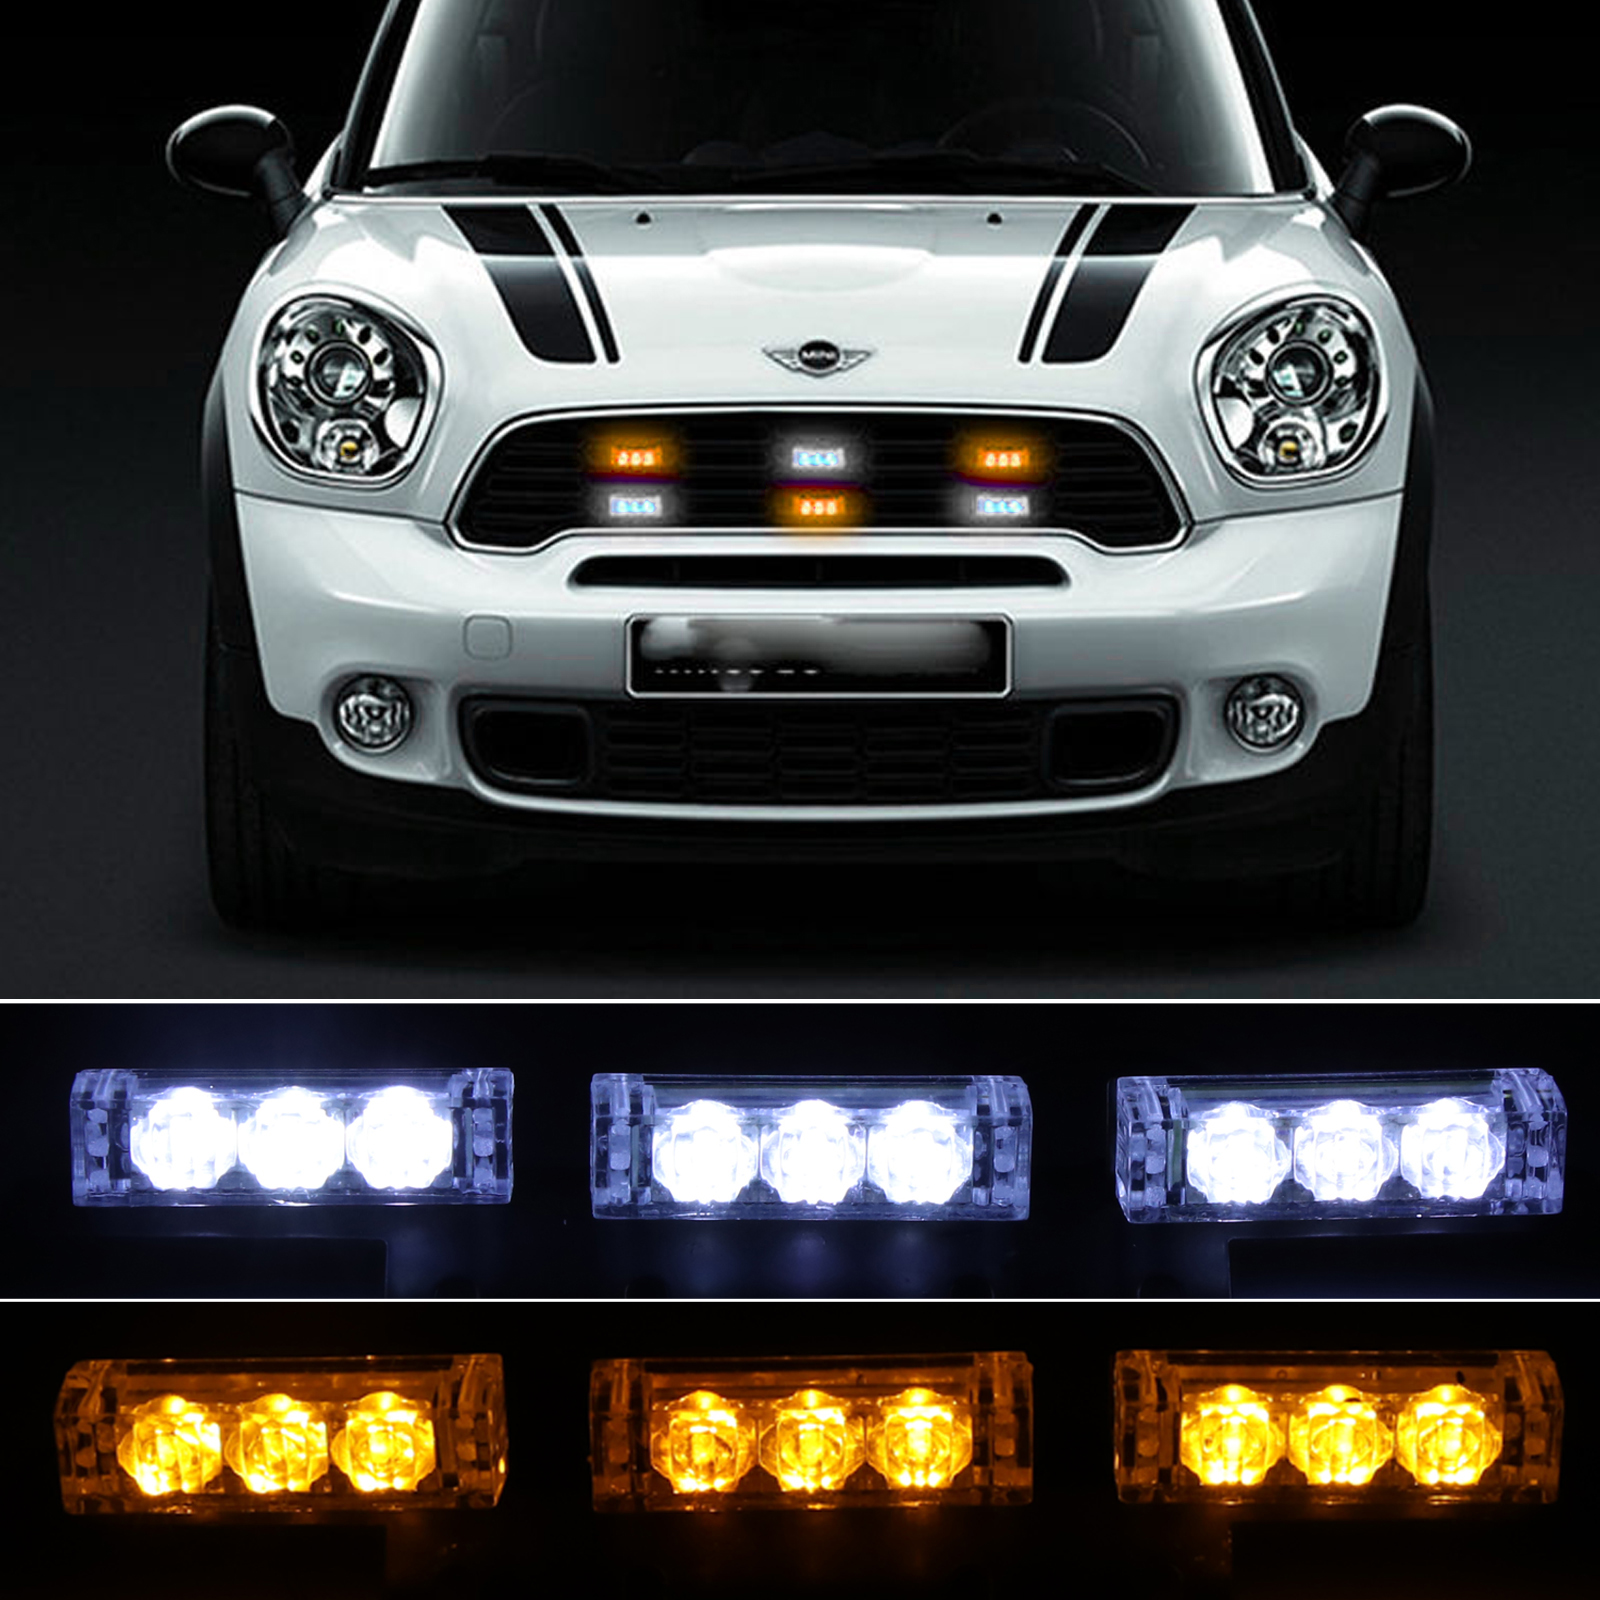 Vehicle Strobe Lights >> Details About 12v 54 Led White Amber Flashing Emergency Recovery Vehicle Strobe Grille Lights